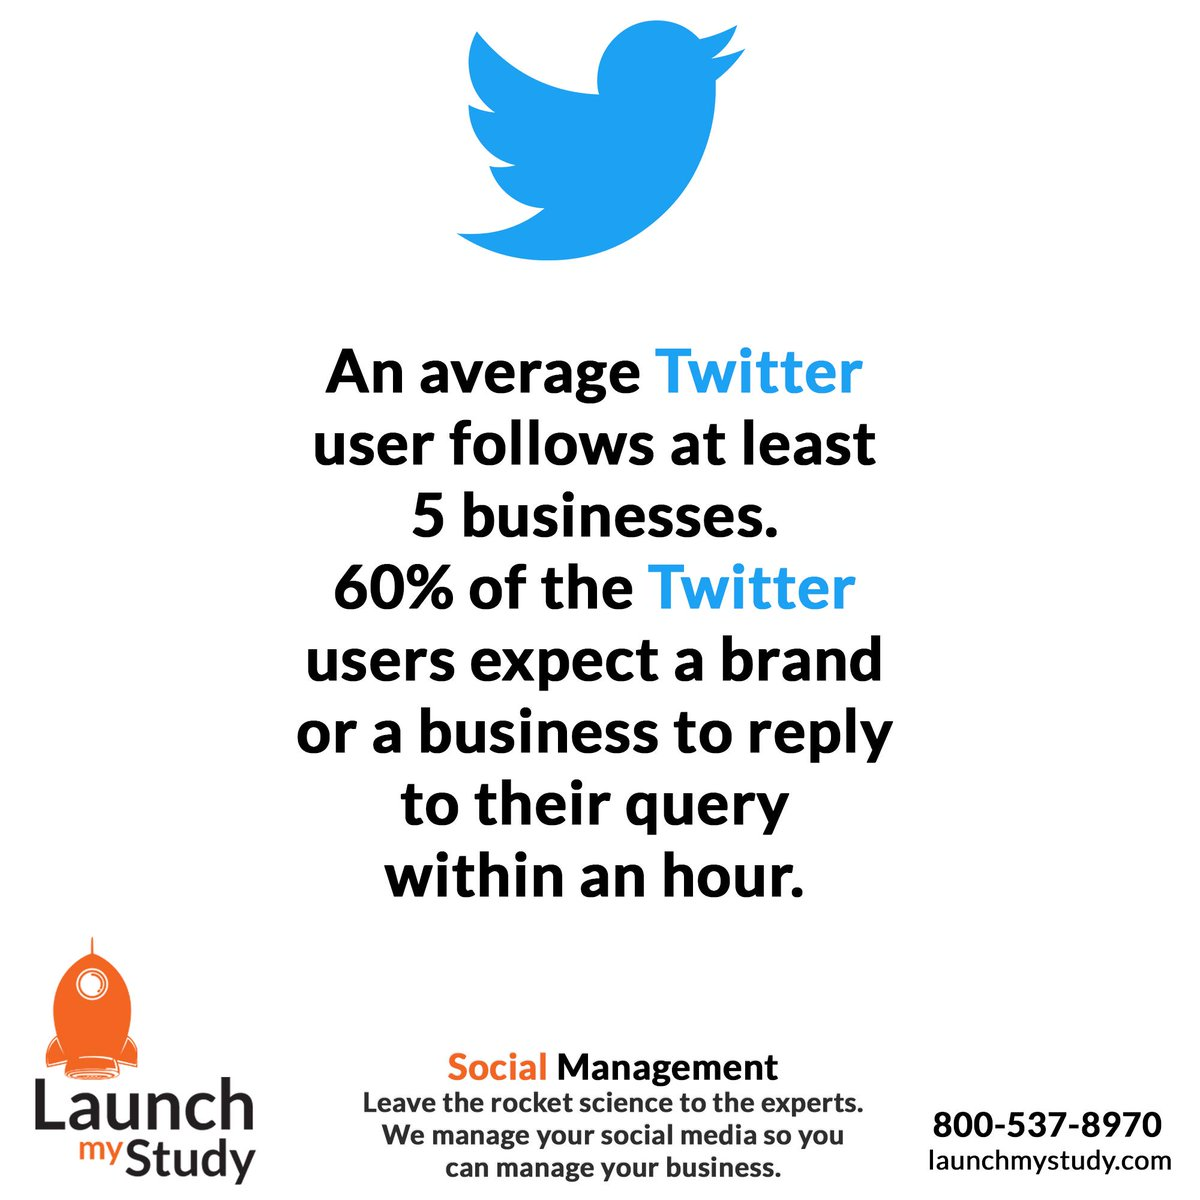 An average Twitter user follows at least 5 businesses. 60% of the Twitter users expect a brand  or a business to reply to their query within an hour. - - - #twitter #twitterposts #twittermarketing #twitterpost #twitterfacts #twitterwhy #TwitterTips #twitterupdate #TwitterAds ...pic.twitter.com/xmO9TVJ6xr